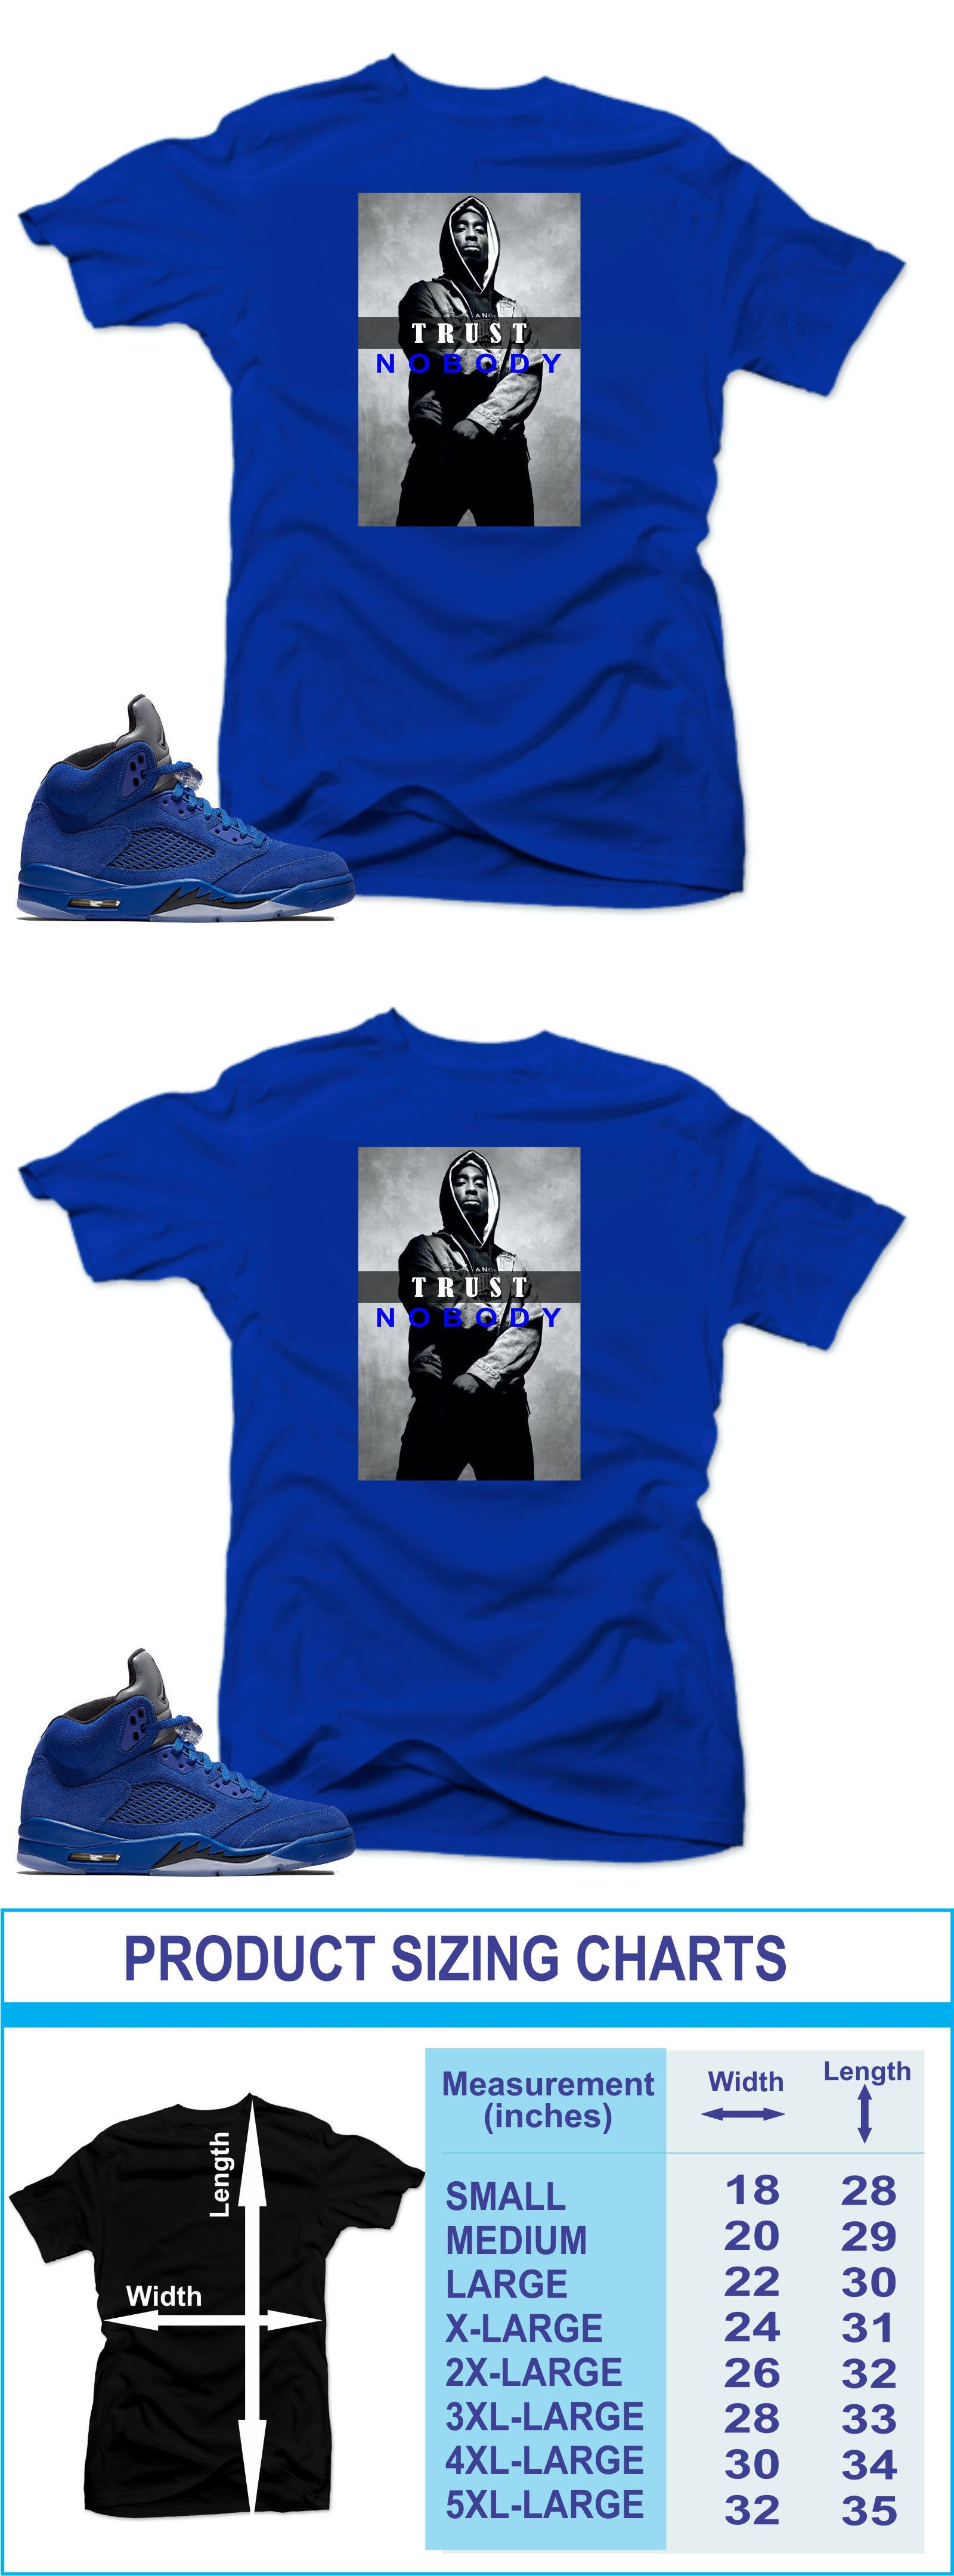 caaf1b226cc903 Basketball 21194  Shirt To Match Air Jordan Retro 5 Blue Suede Sneakers.Trust  Nobody Royal Tee -  BUY IT NOW ONLY   26.32 on eBay!